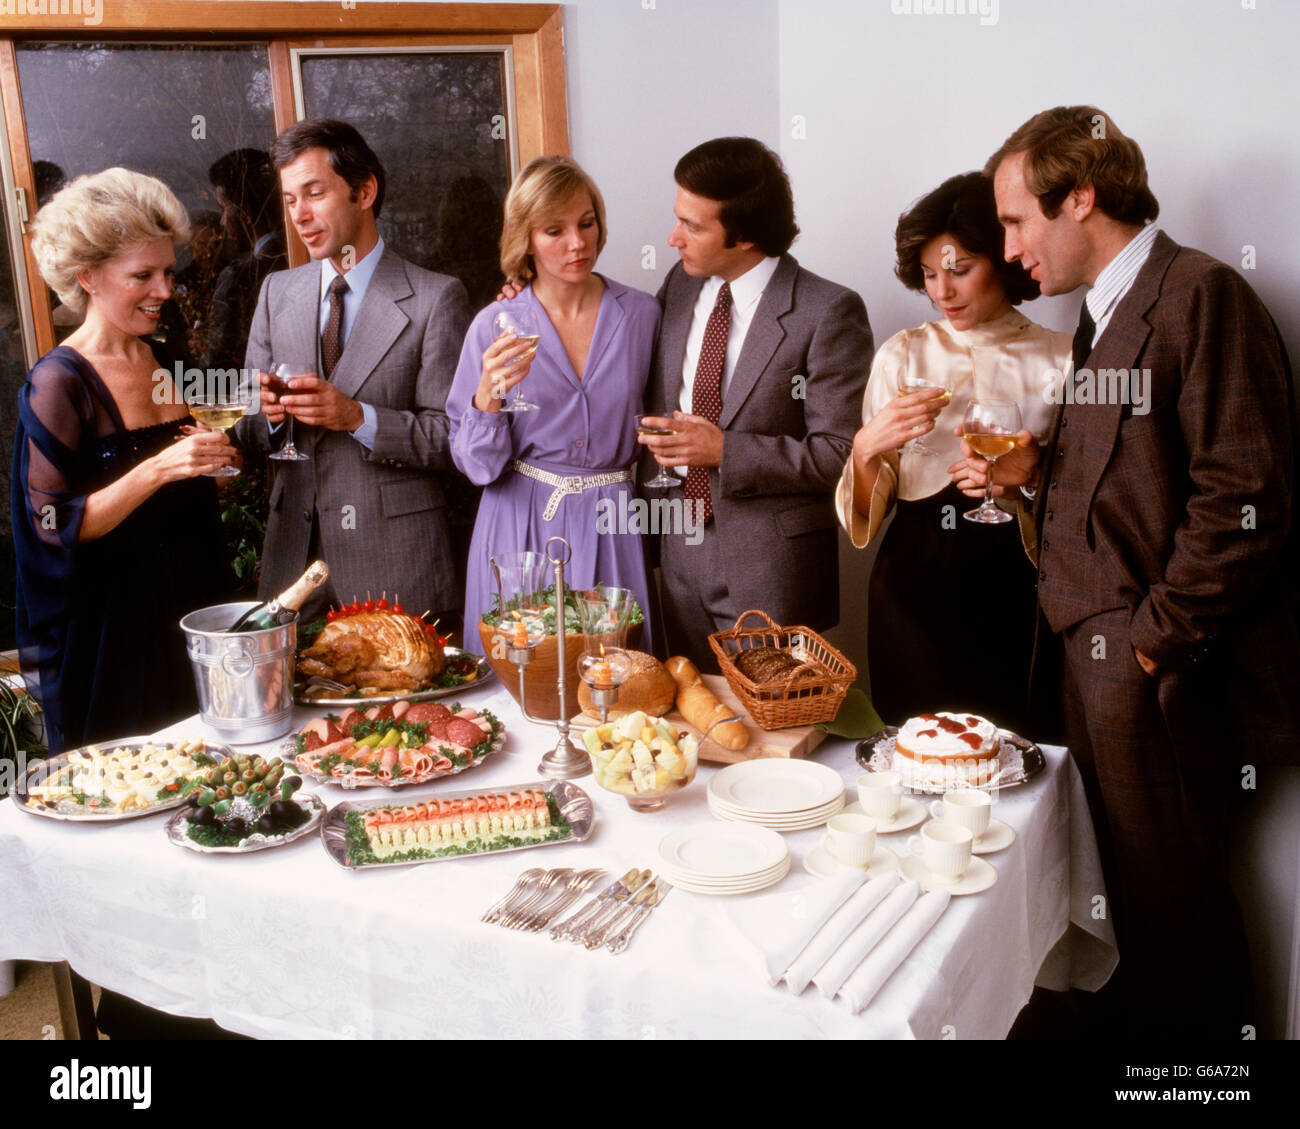 1980s Food Table Stock Photos & 1980s Food Table Stock